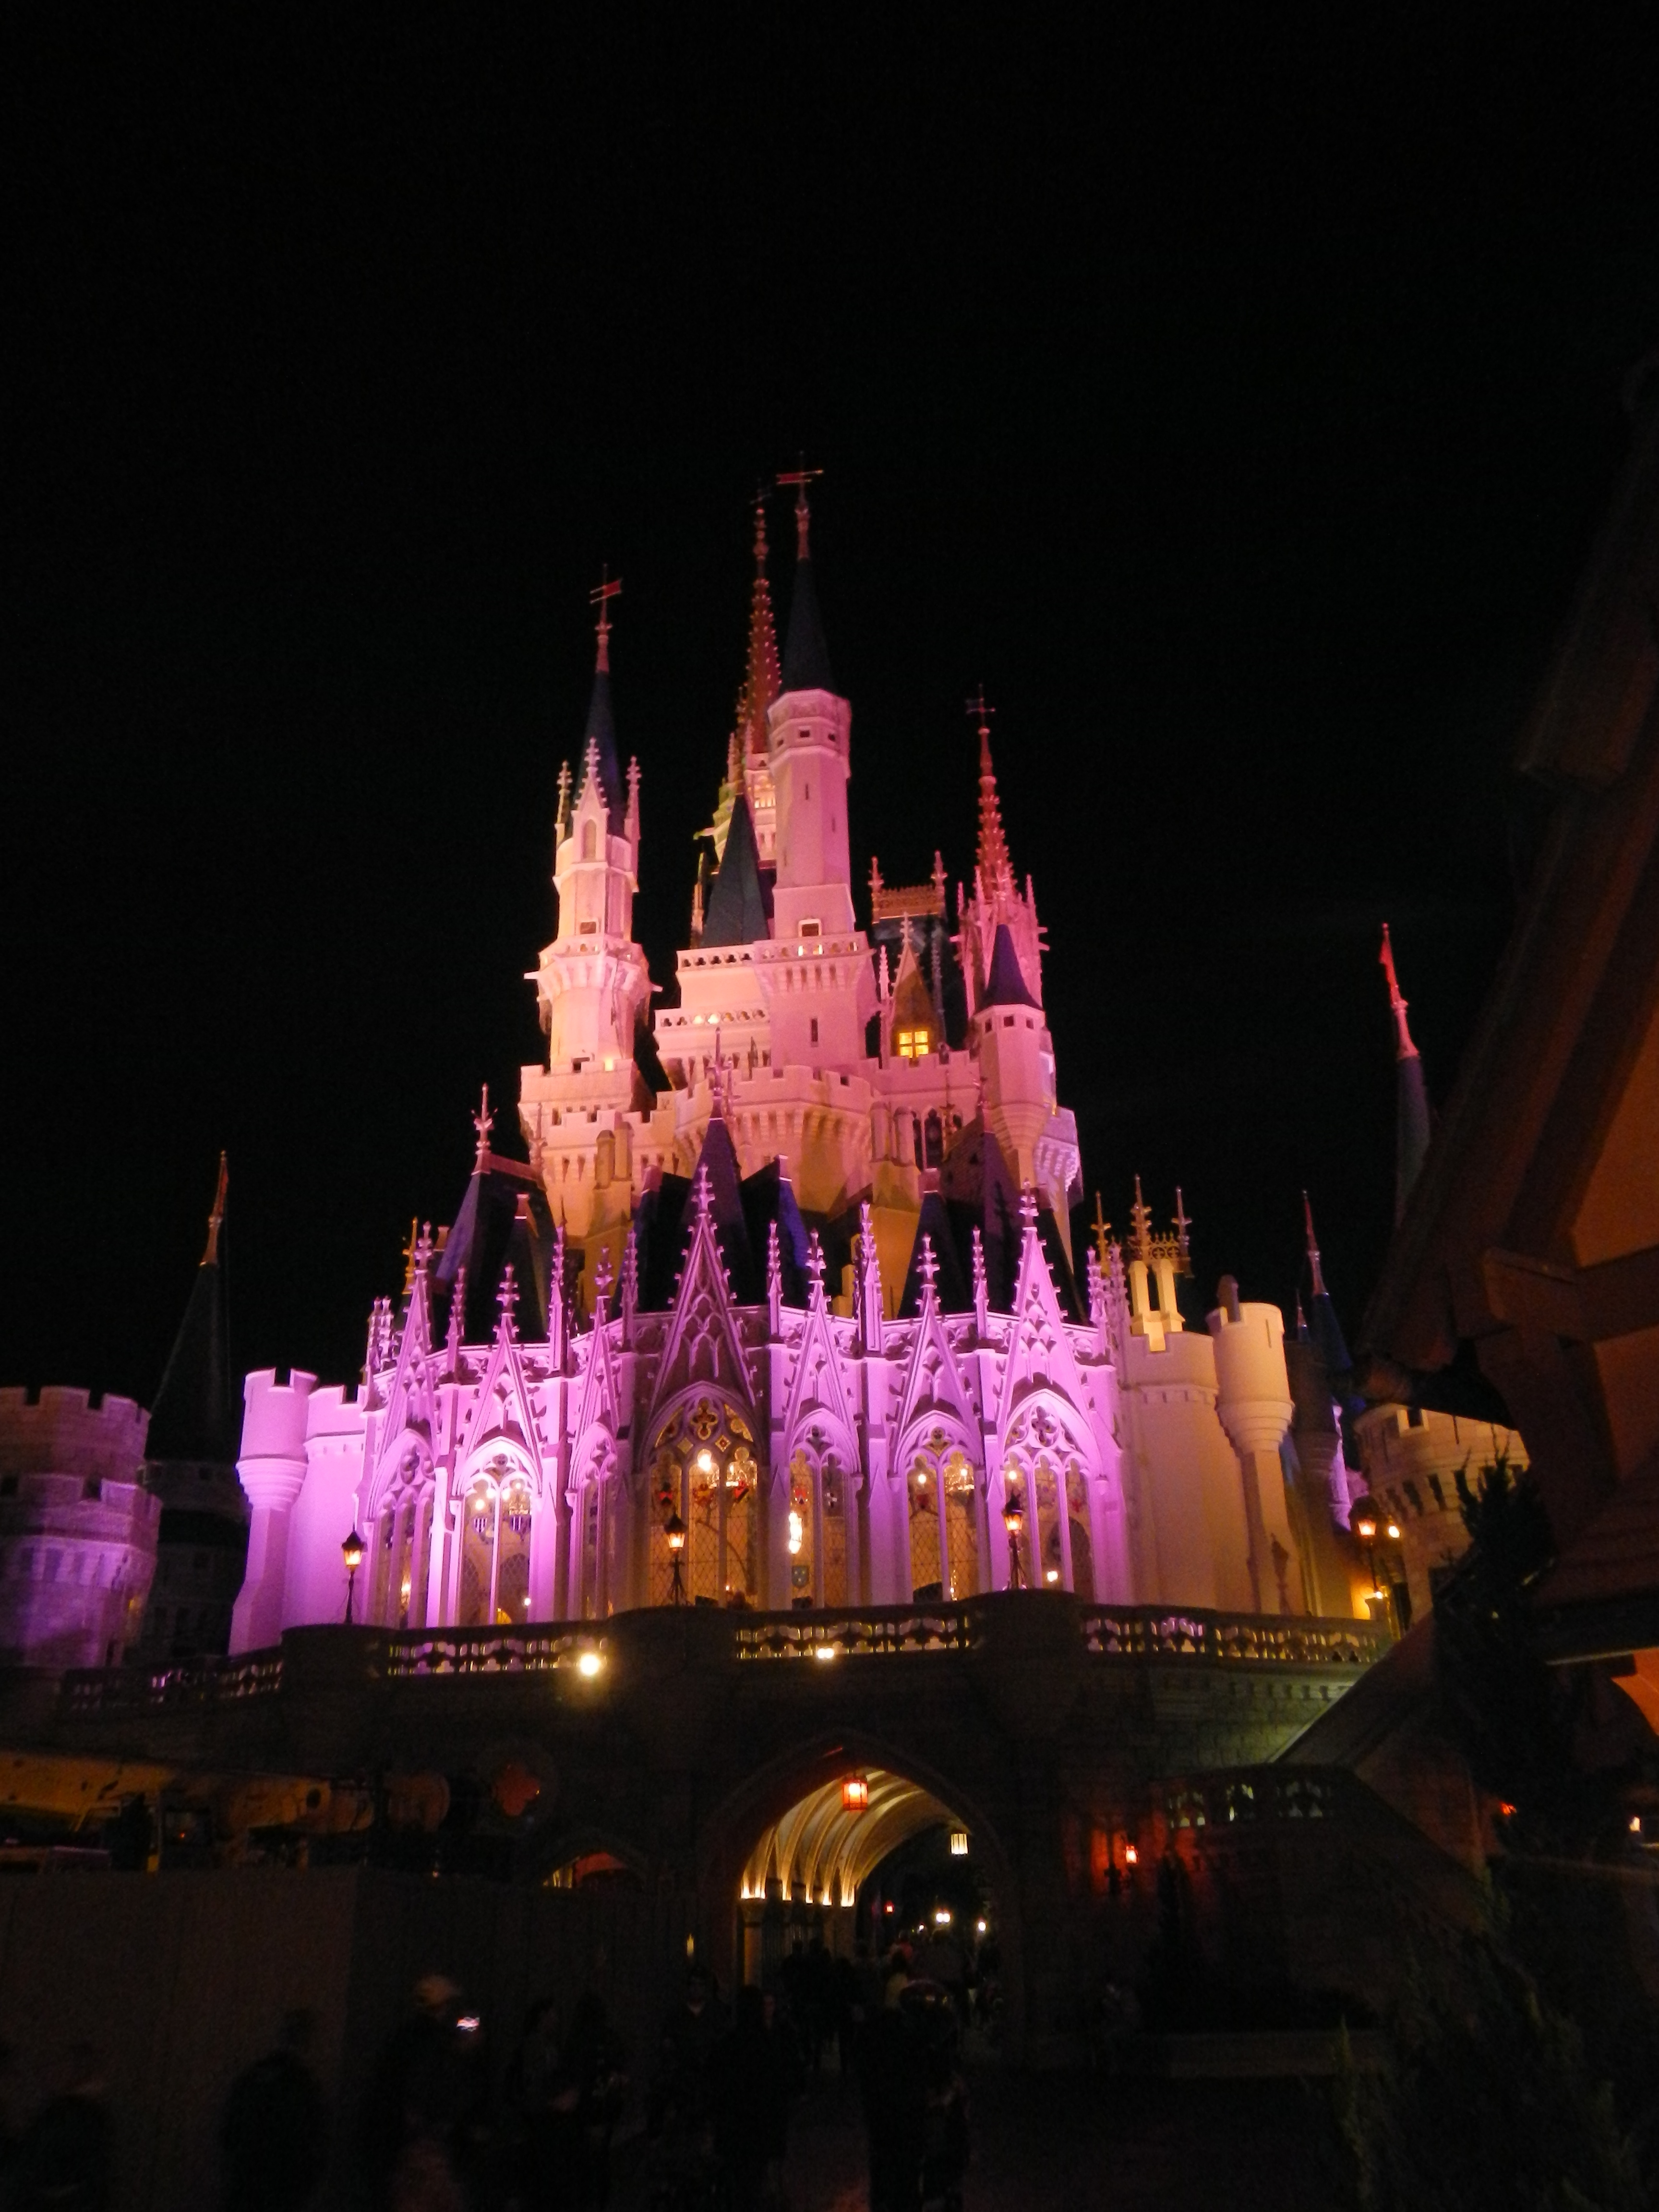 Another shot of Cinderella's Castle.